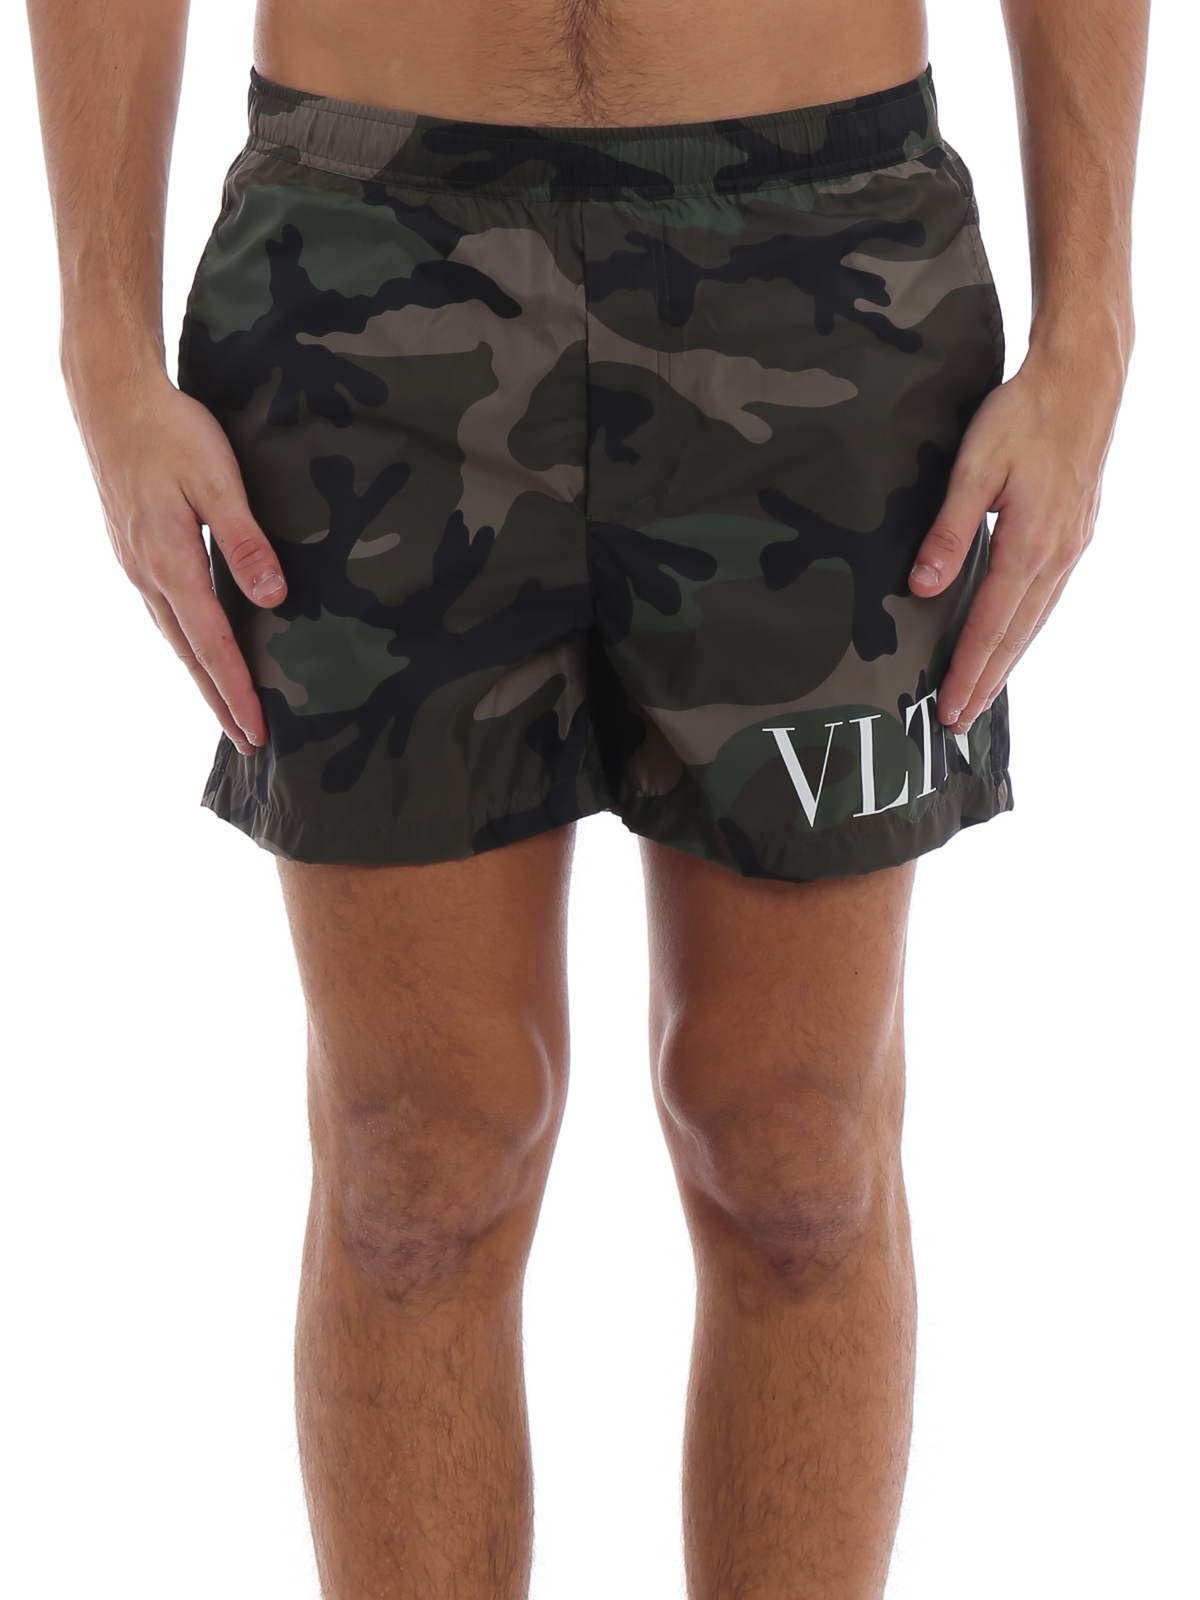 34c358587ec52 iKRIX VALENTINO: Swim shorts & swimming trunks - VLTN camouflage swim shorts